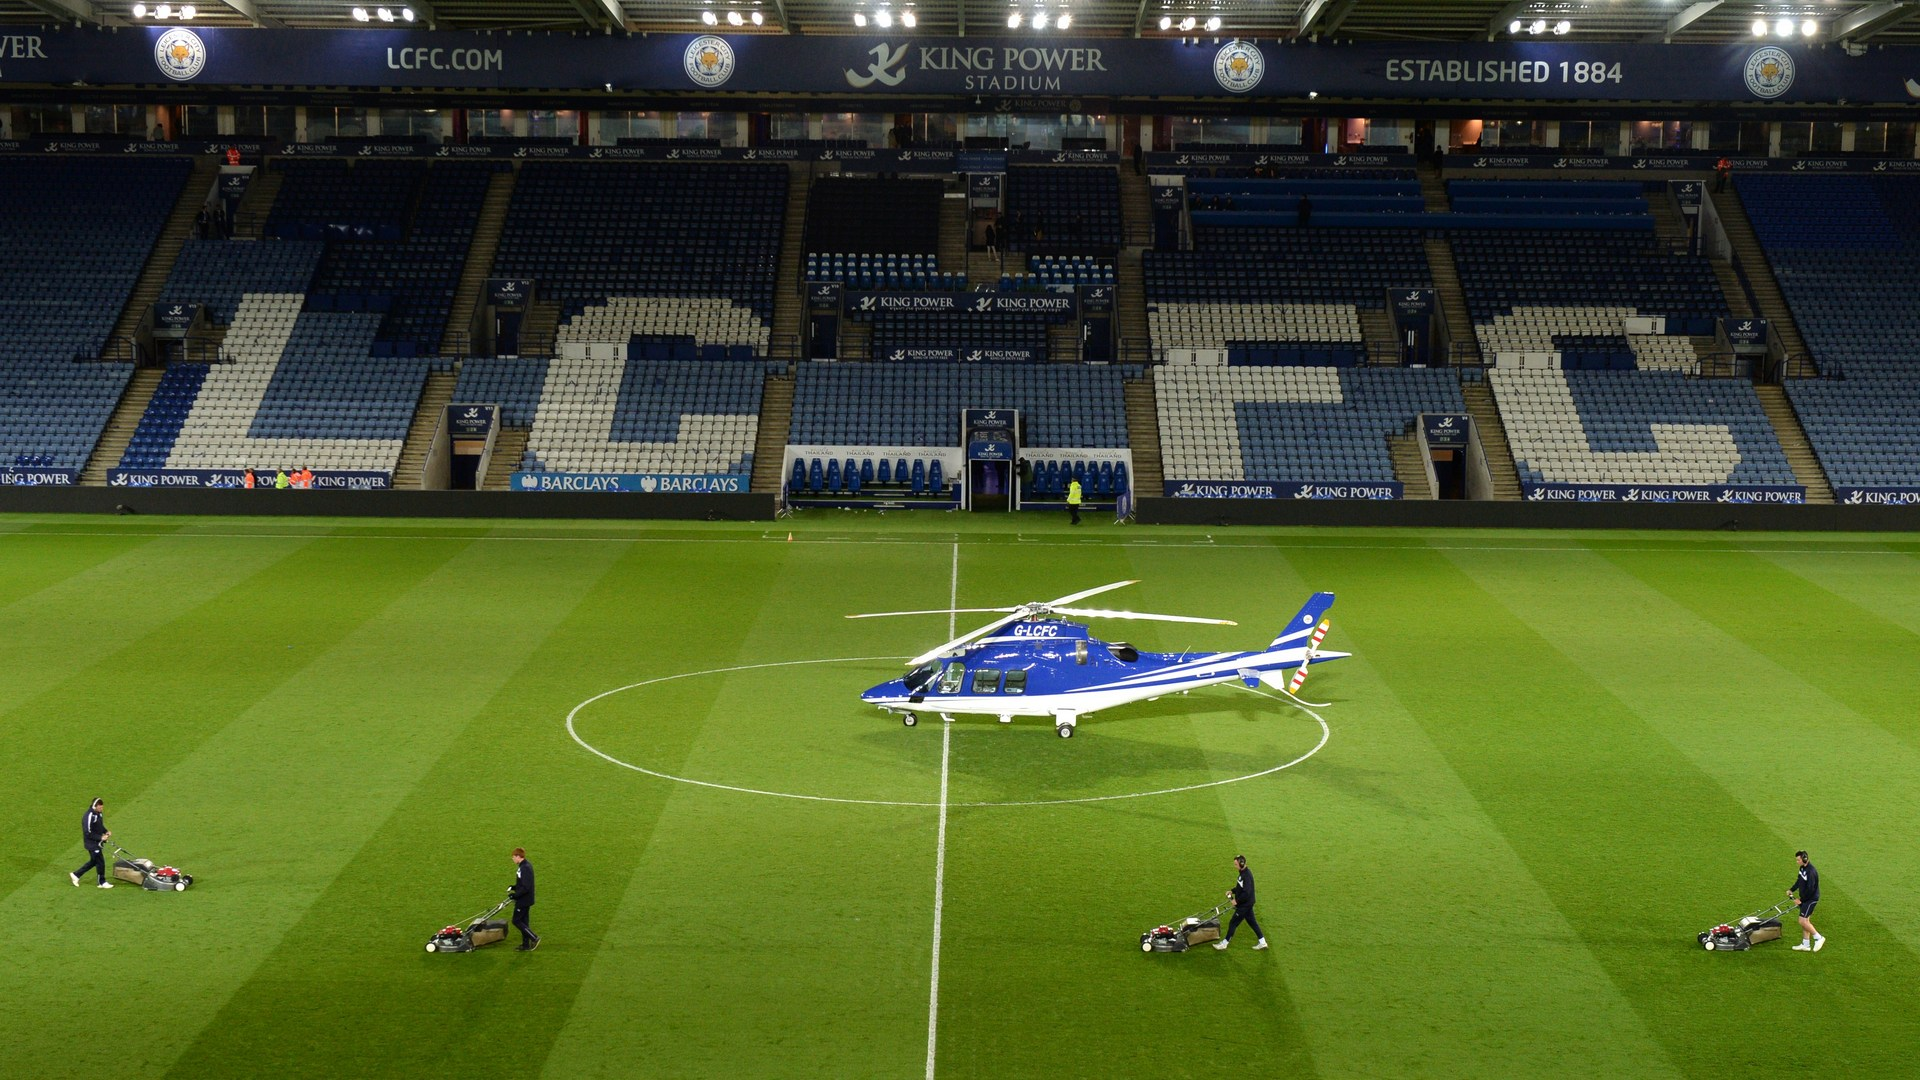 Leicester heartbroken at the death of their owner in helicopter crash